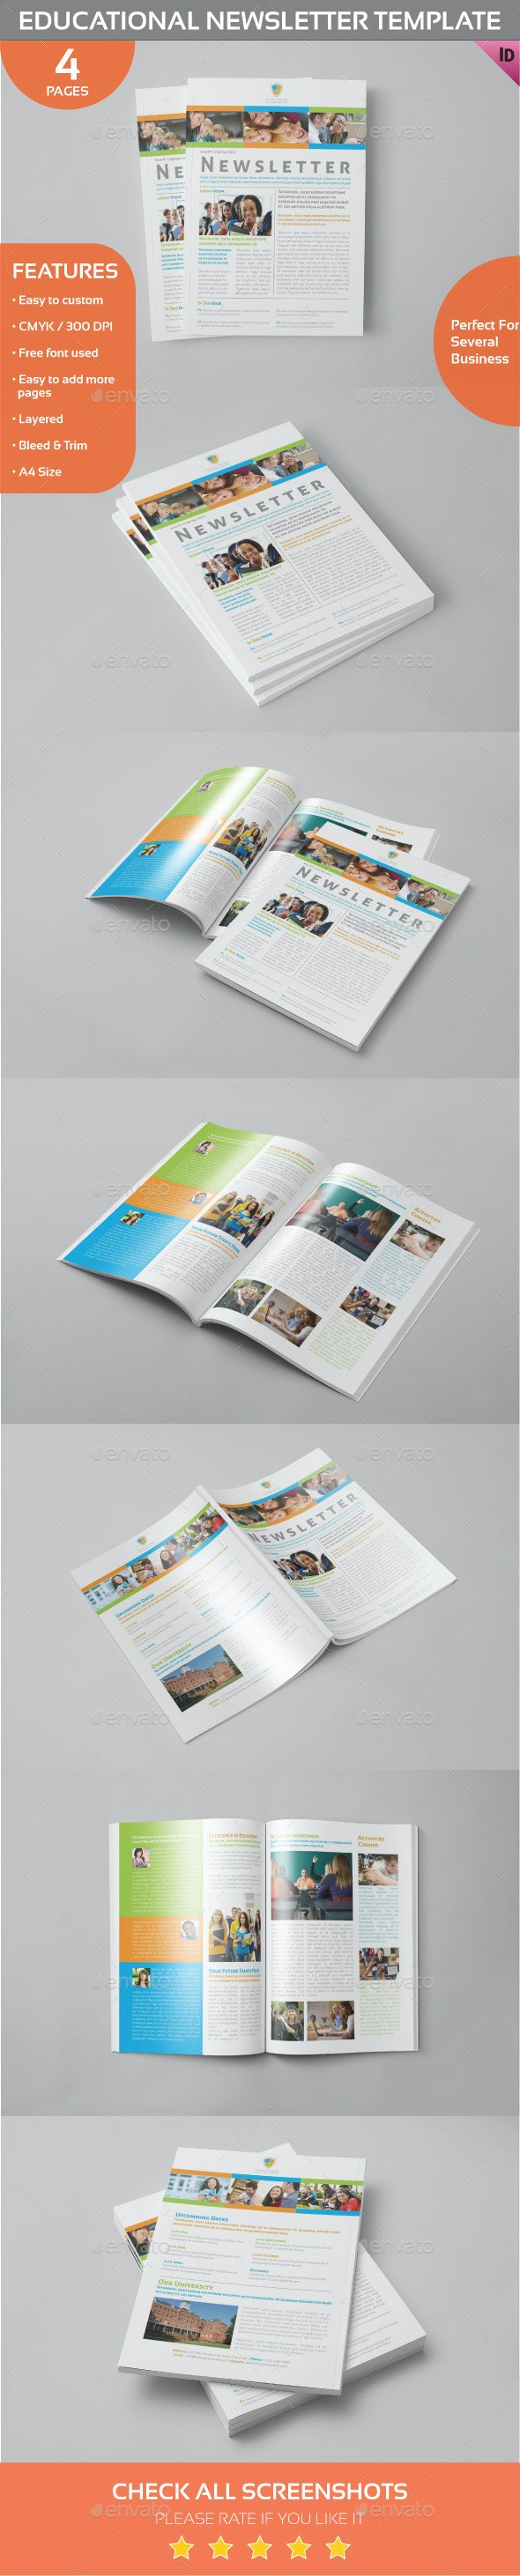 Educational Newsletter Template - Newsletters Print Templates